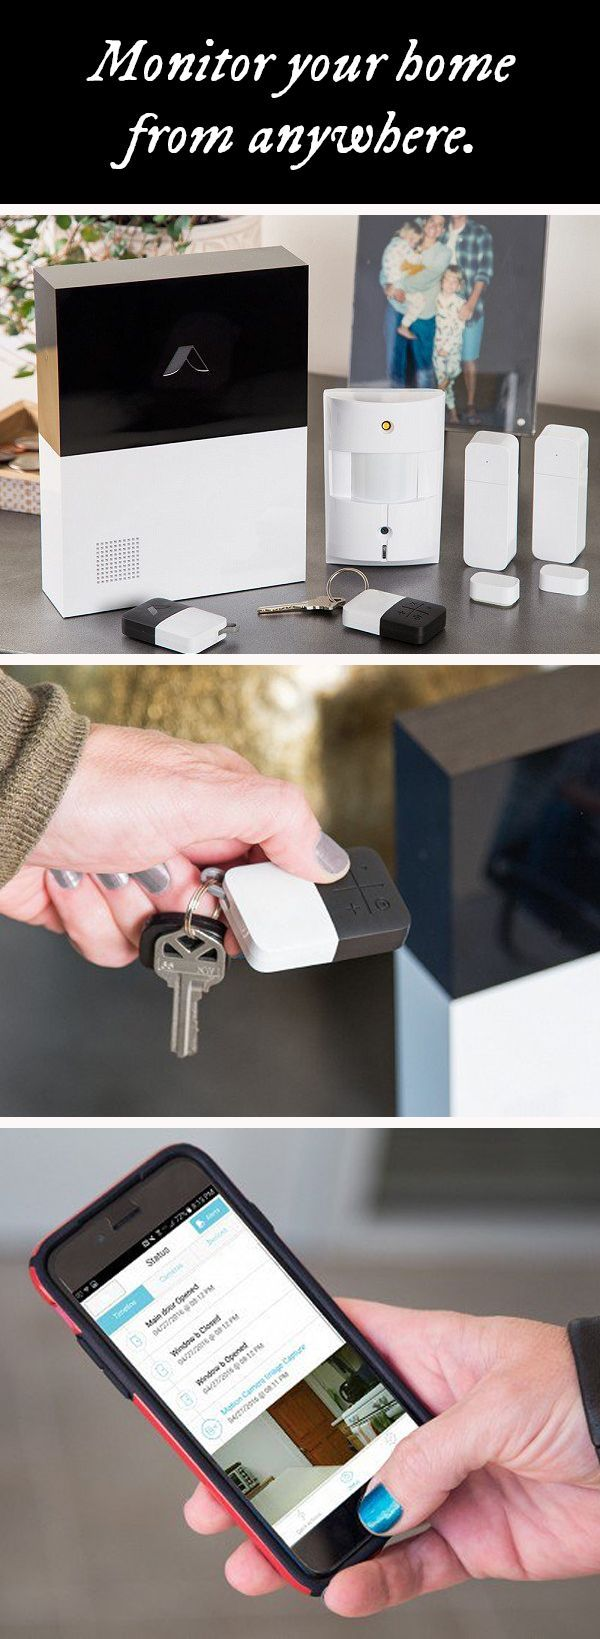 This connected home security system is flexible and lets you monitor